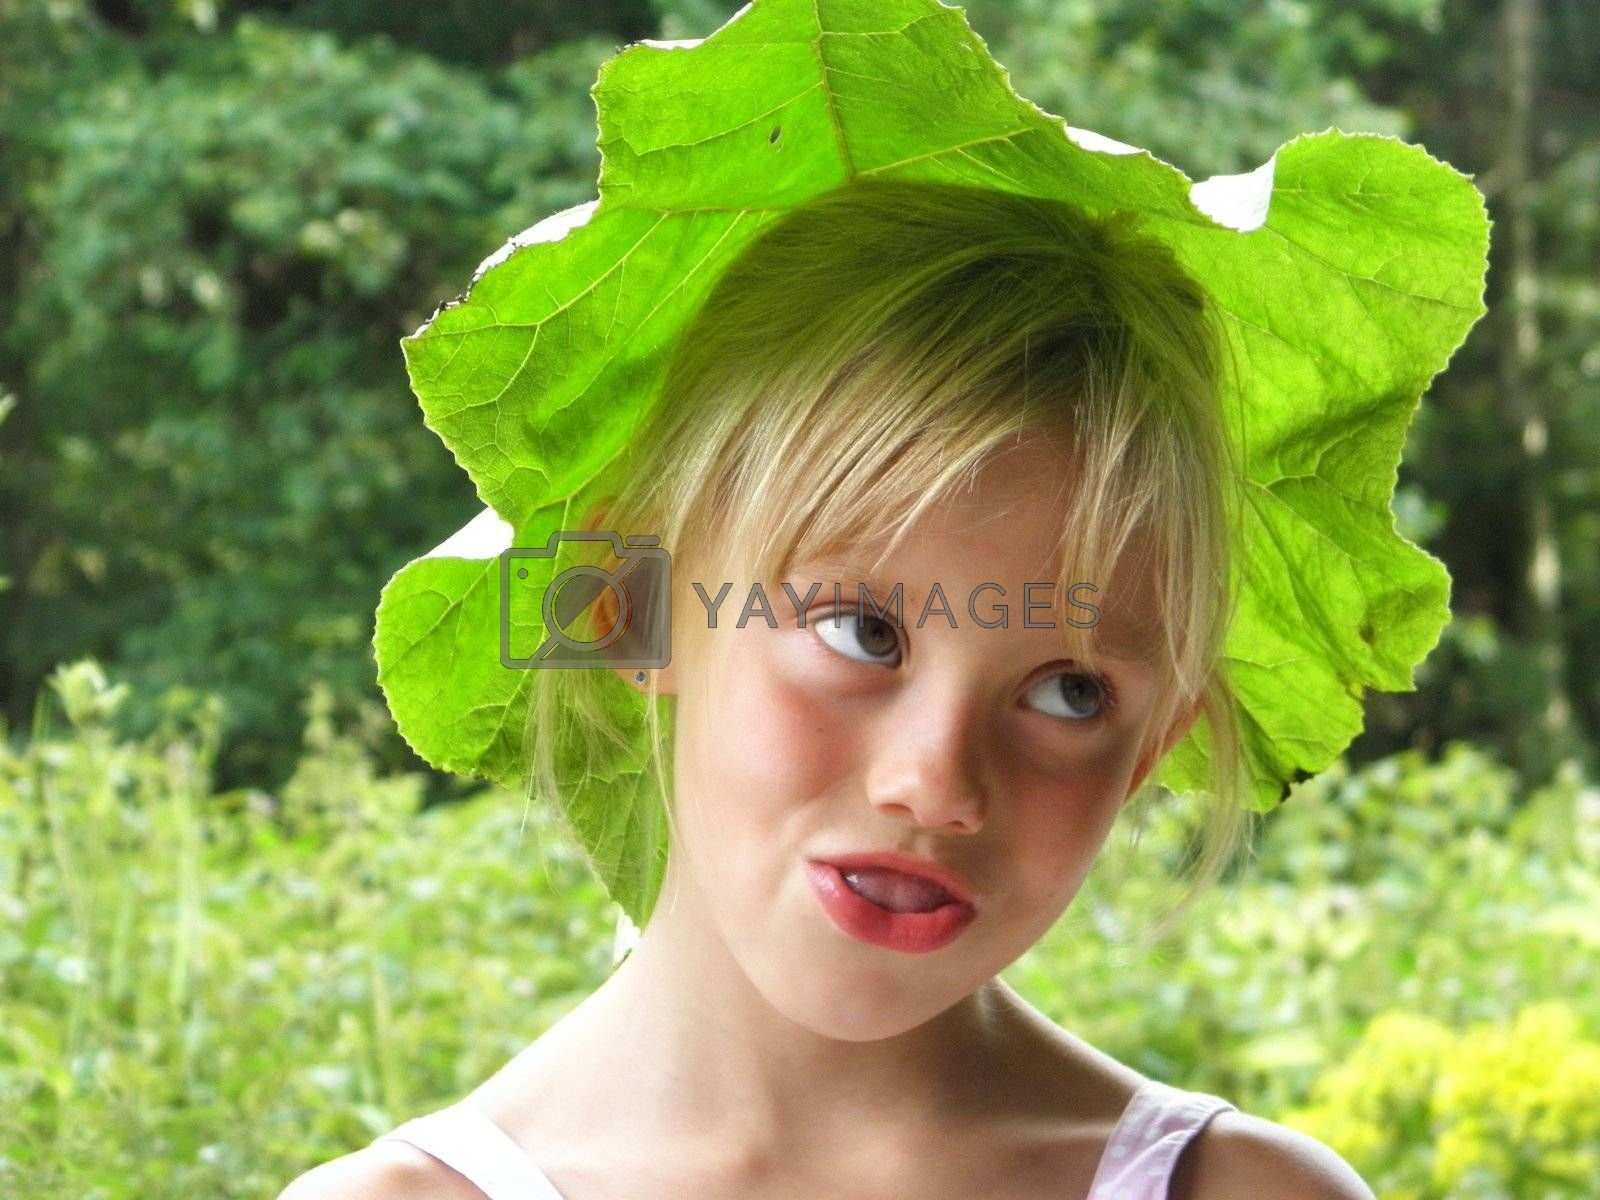 Photo of a blonde girl with a Green Hat from a sheet